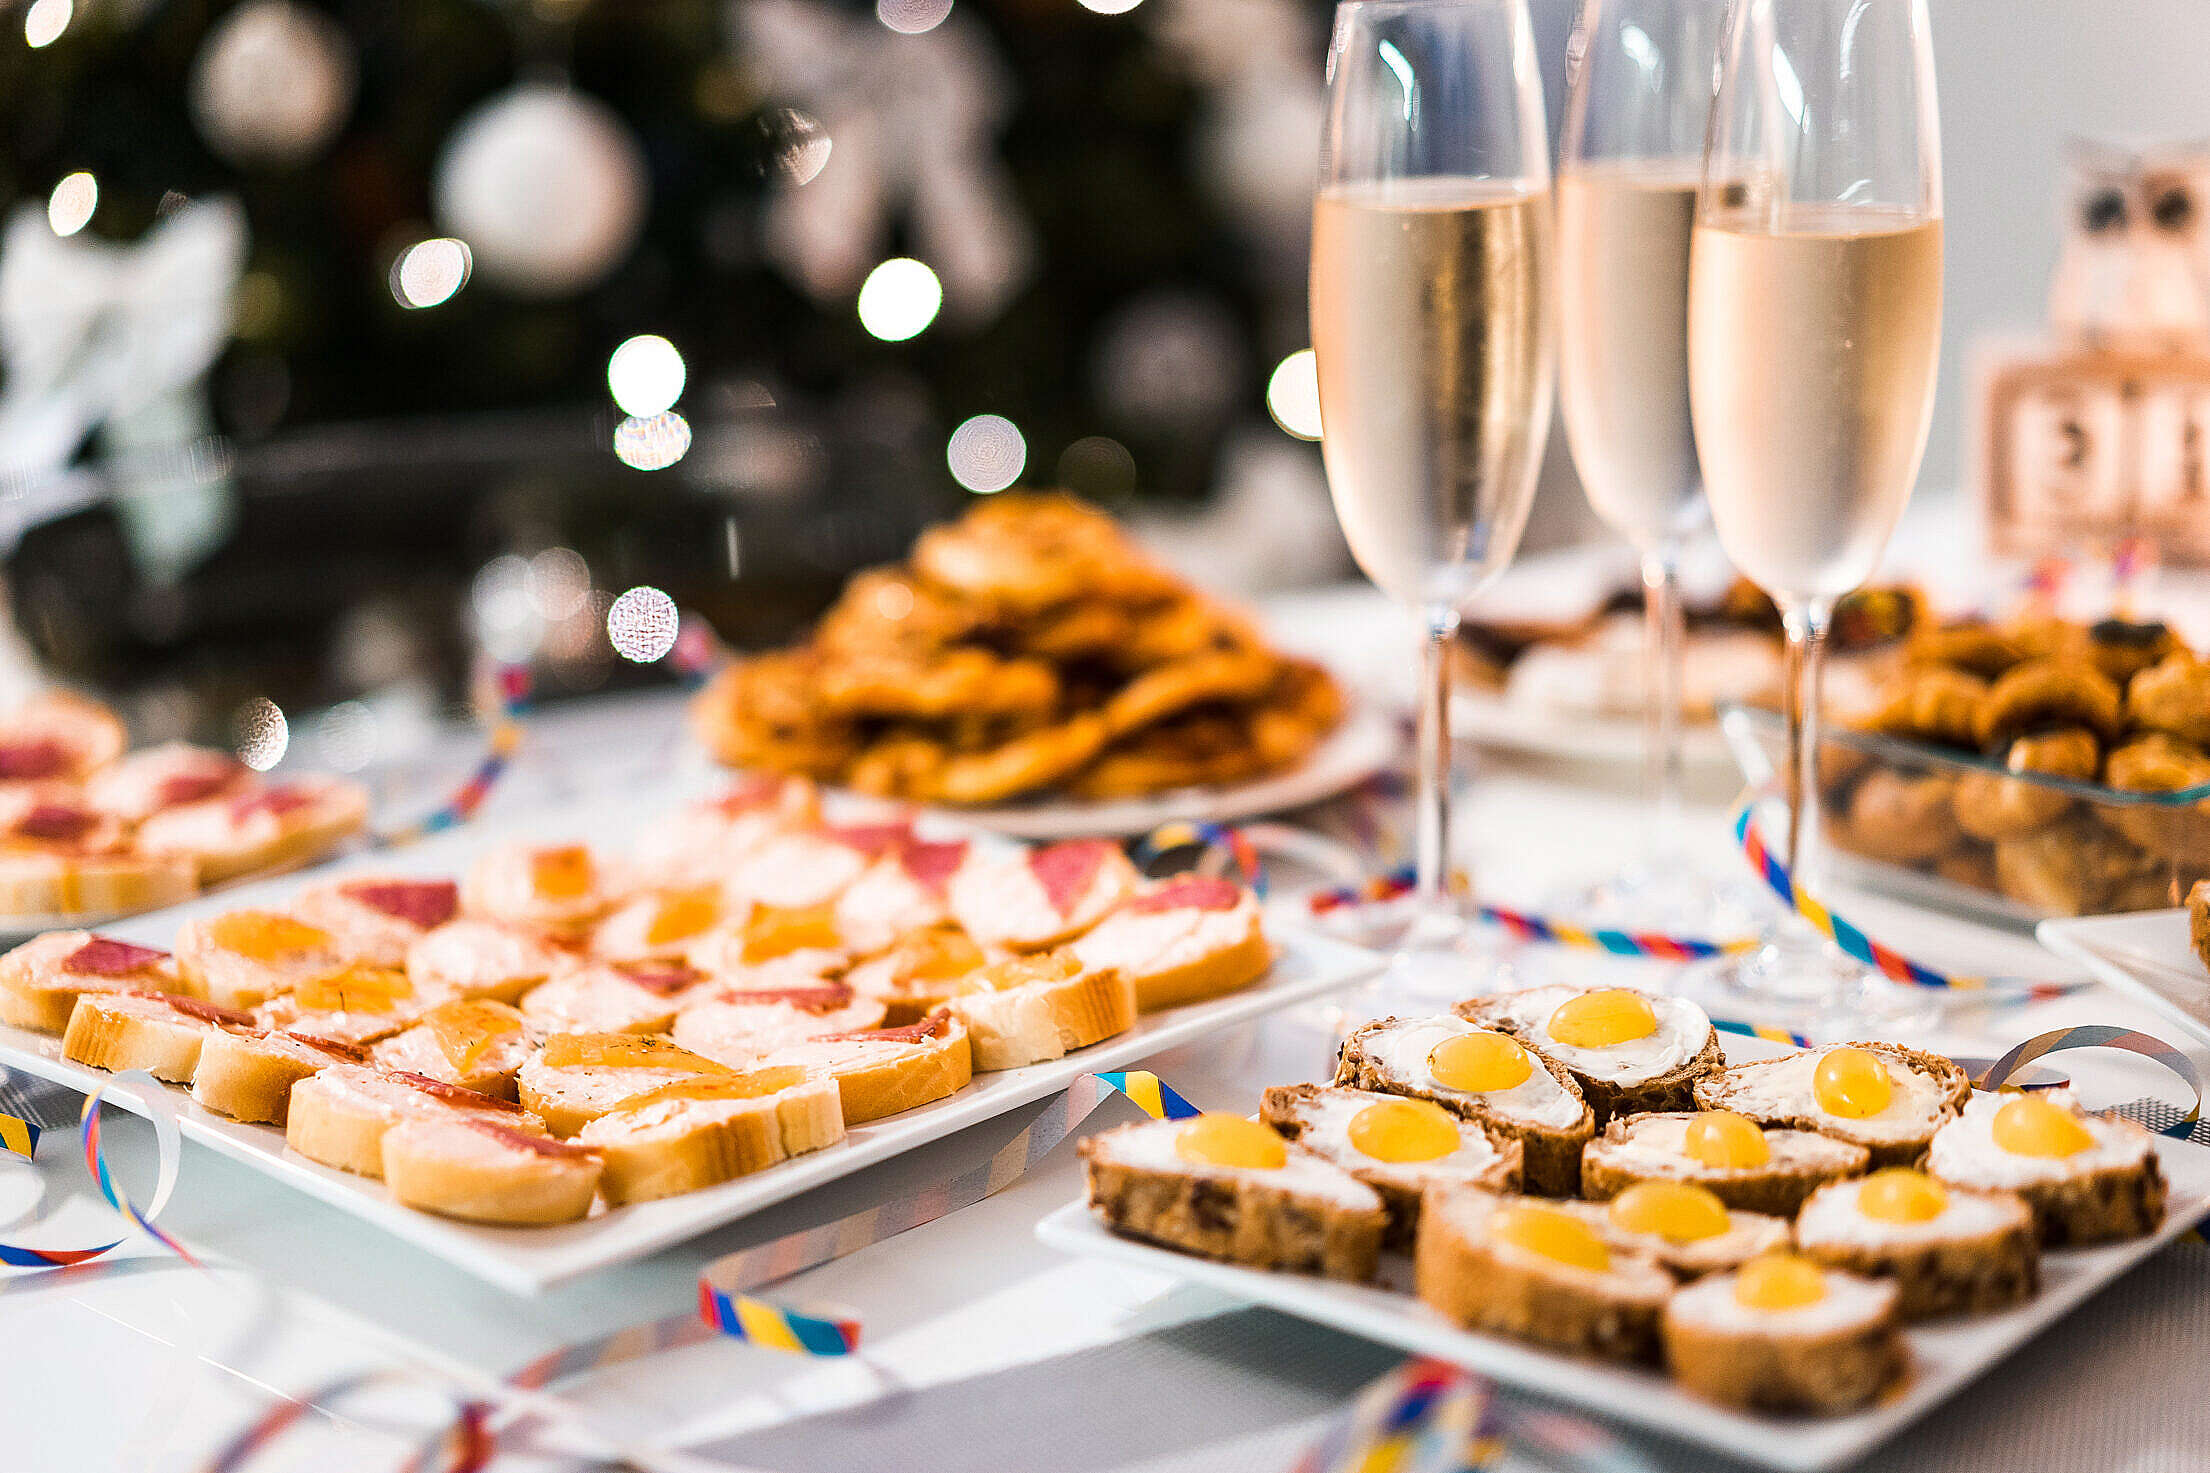 New Years Eve Home Party Food Free Stock Photo